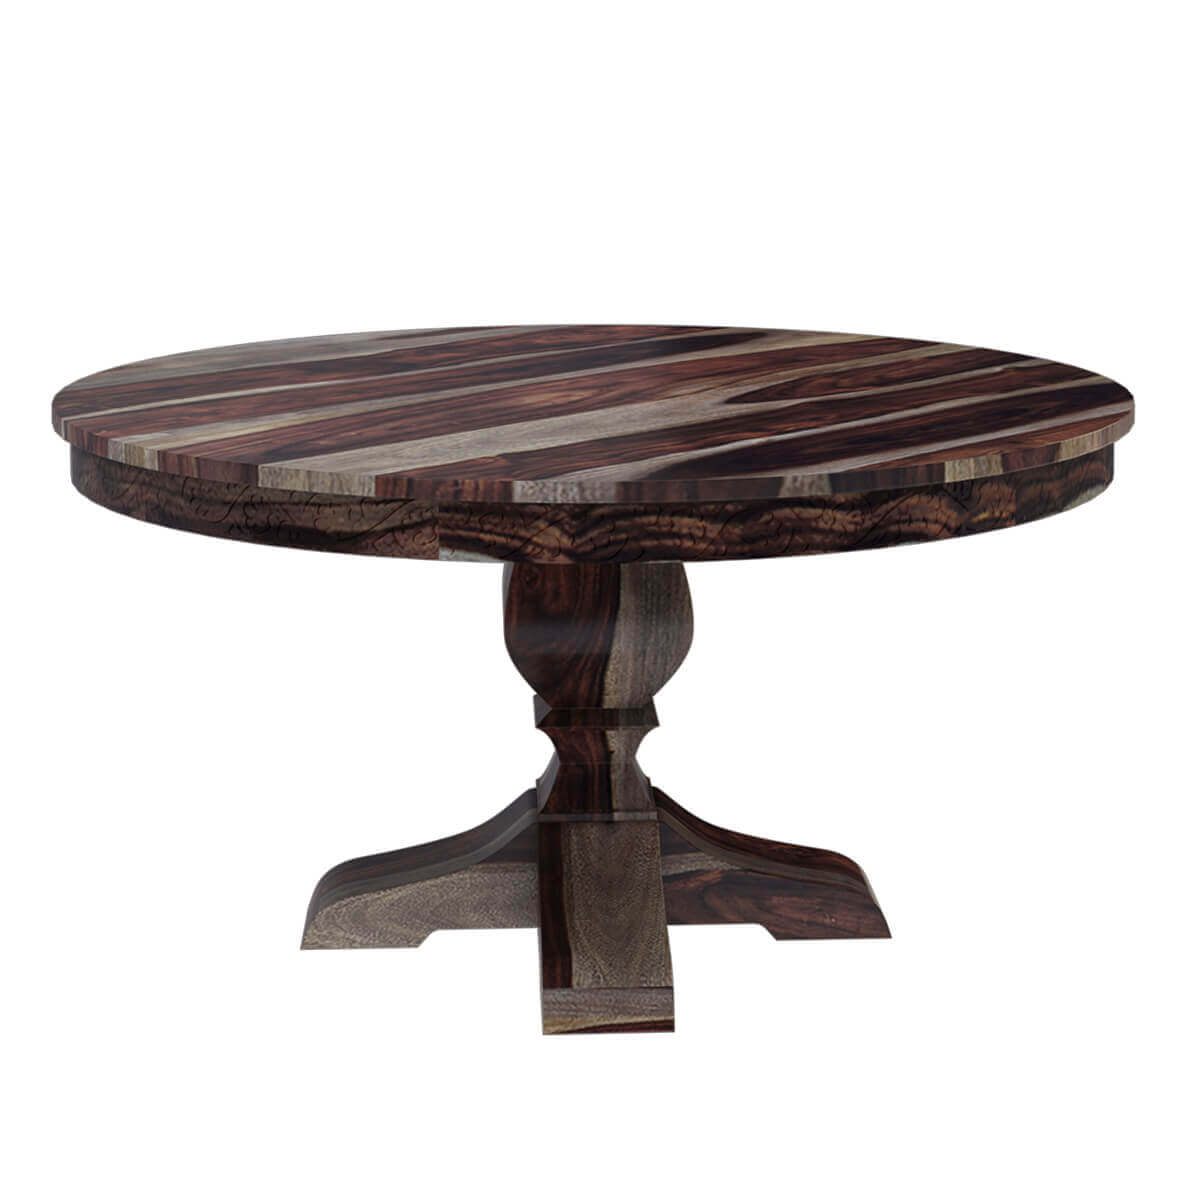 Hosford handcrafted solid wood 60 round pedestal dining table for Hardwood dining table